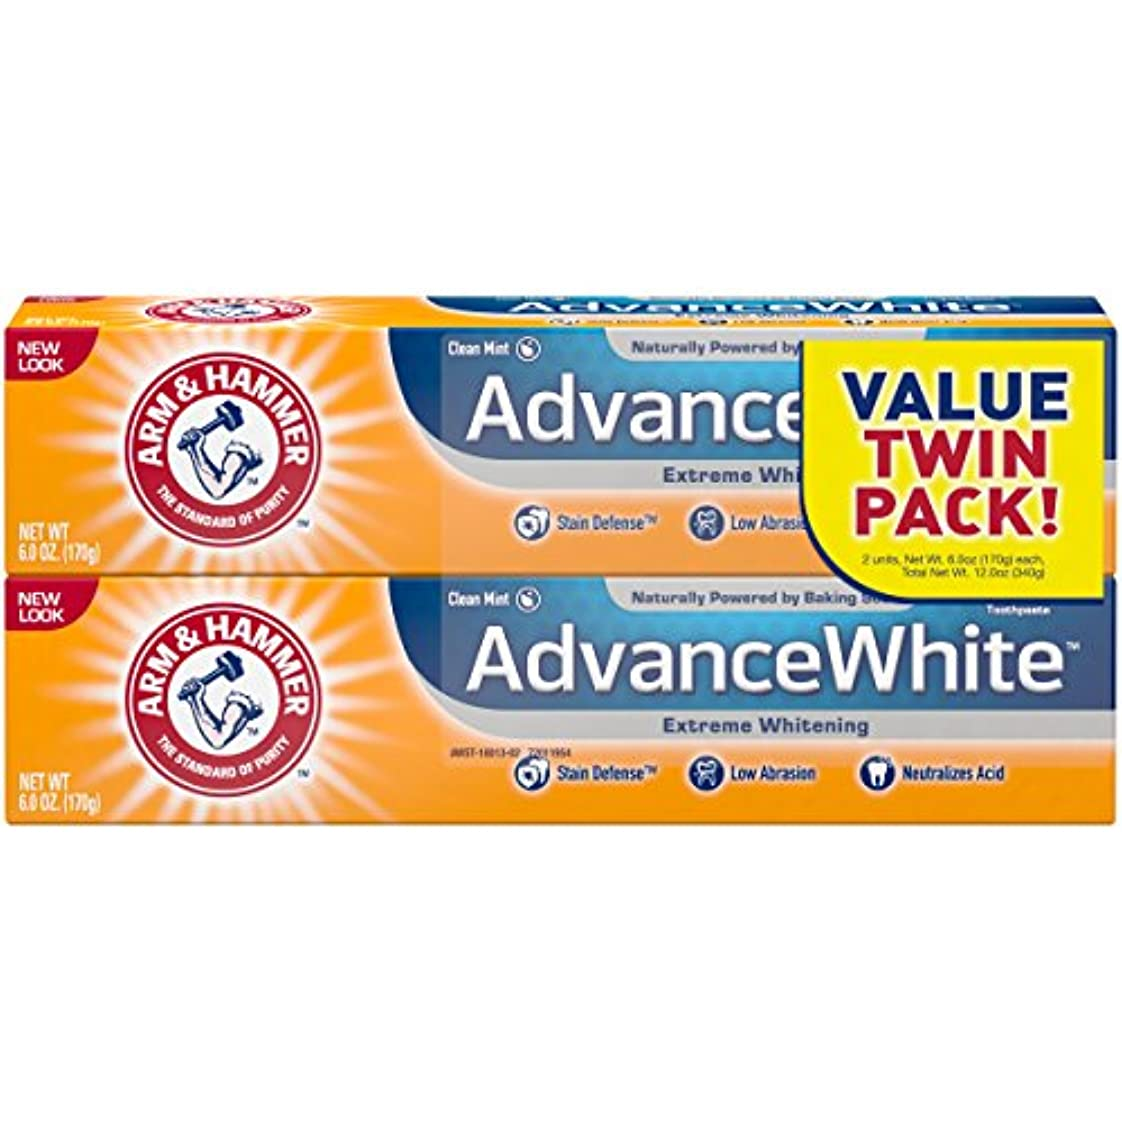 Arm & Hammer アーム&ハマー アドバンス ホワイト 歯磨き粉 2個パック Toothpaste with Baking Soda & Peroxide